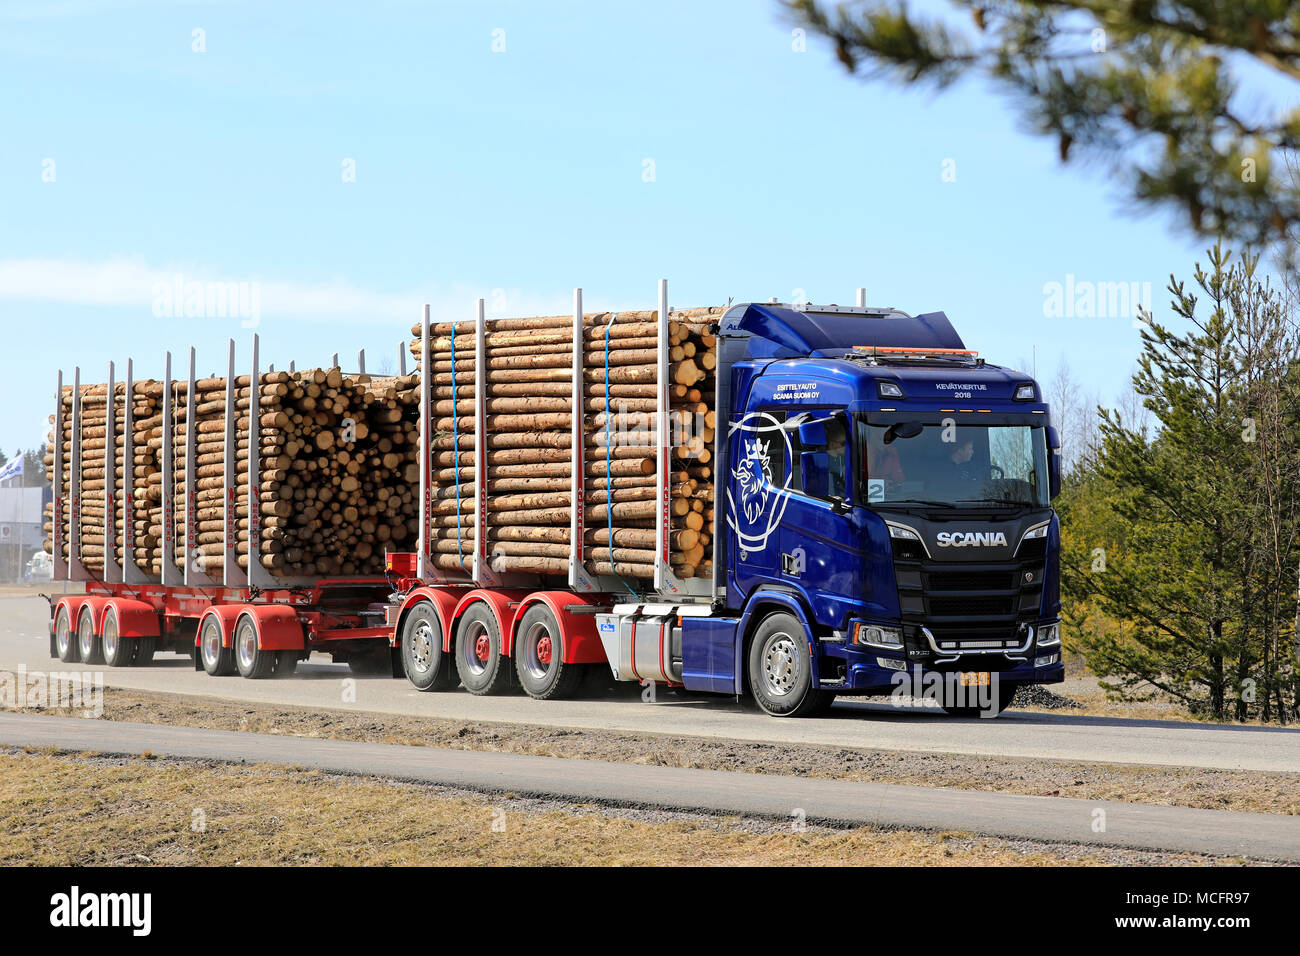 LIETO, FINLAND - APRIL 12, 2018: Blue Scania R730 logging truck on test drive during Scania Tour 2018 in Turku. - Stock Image